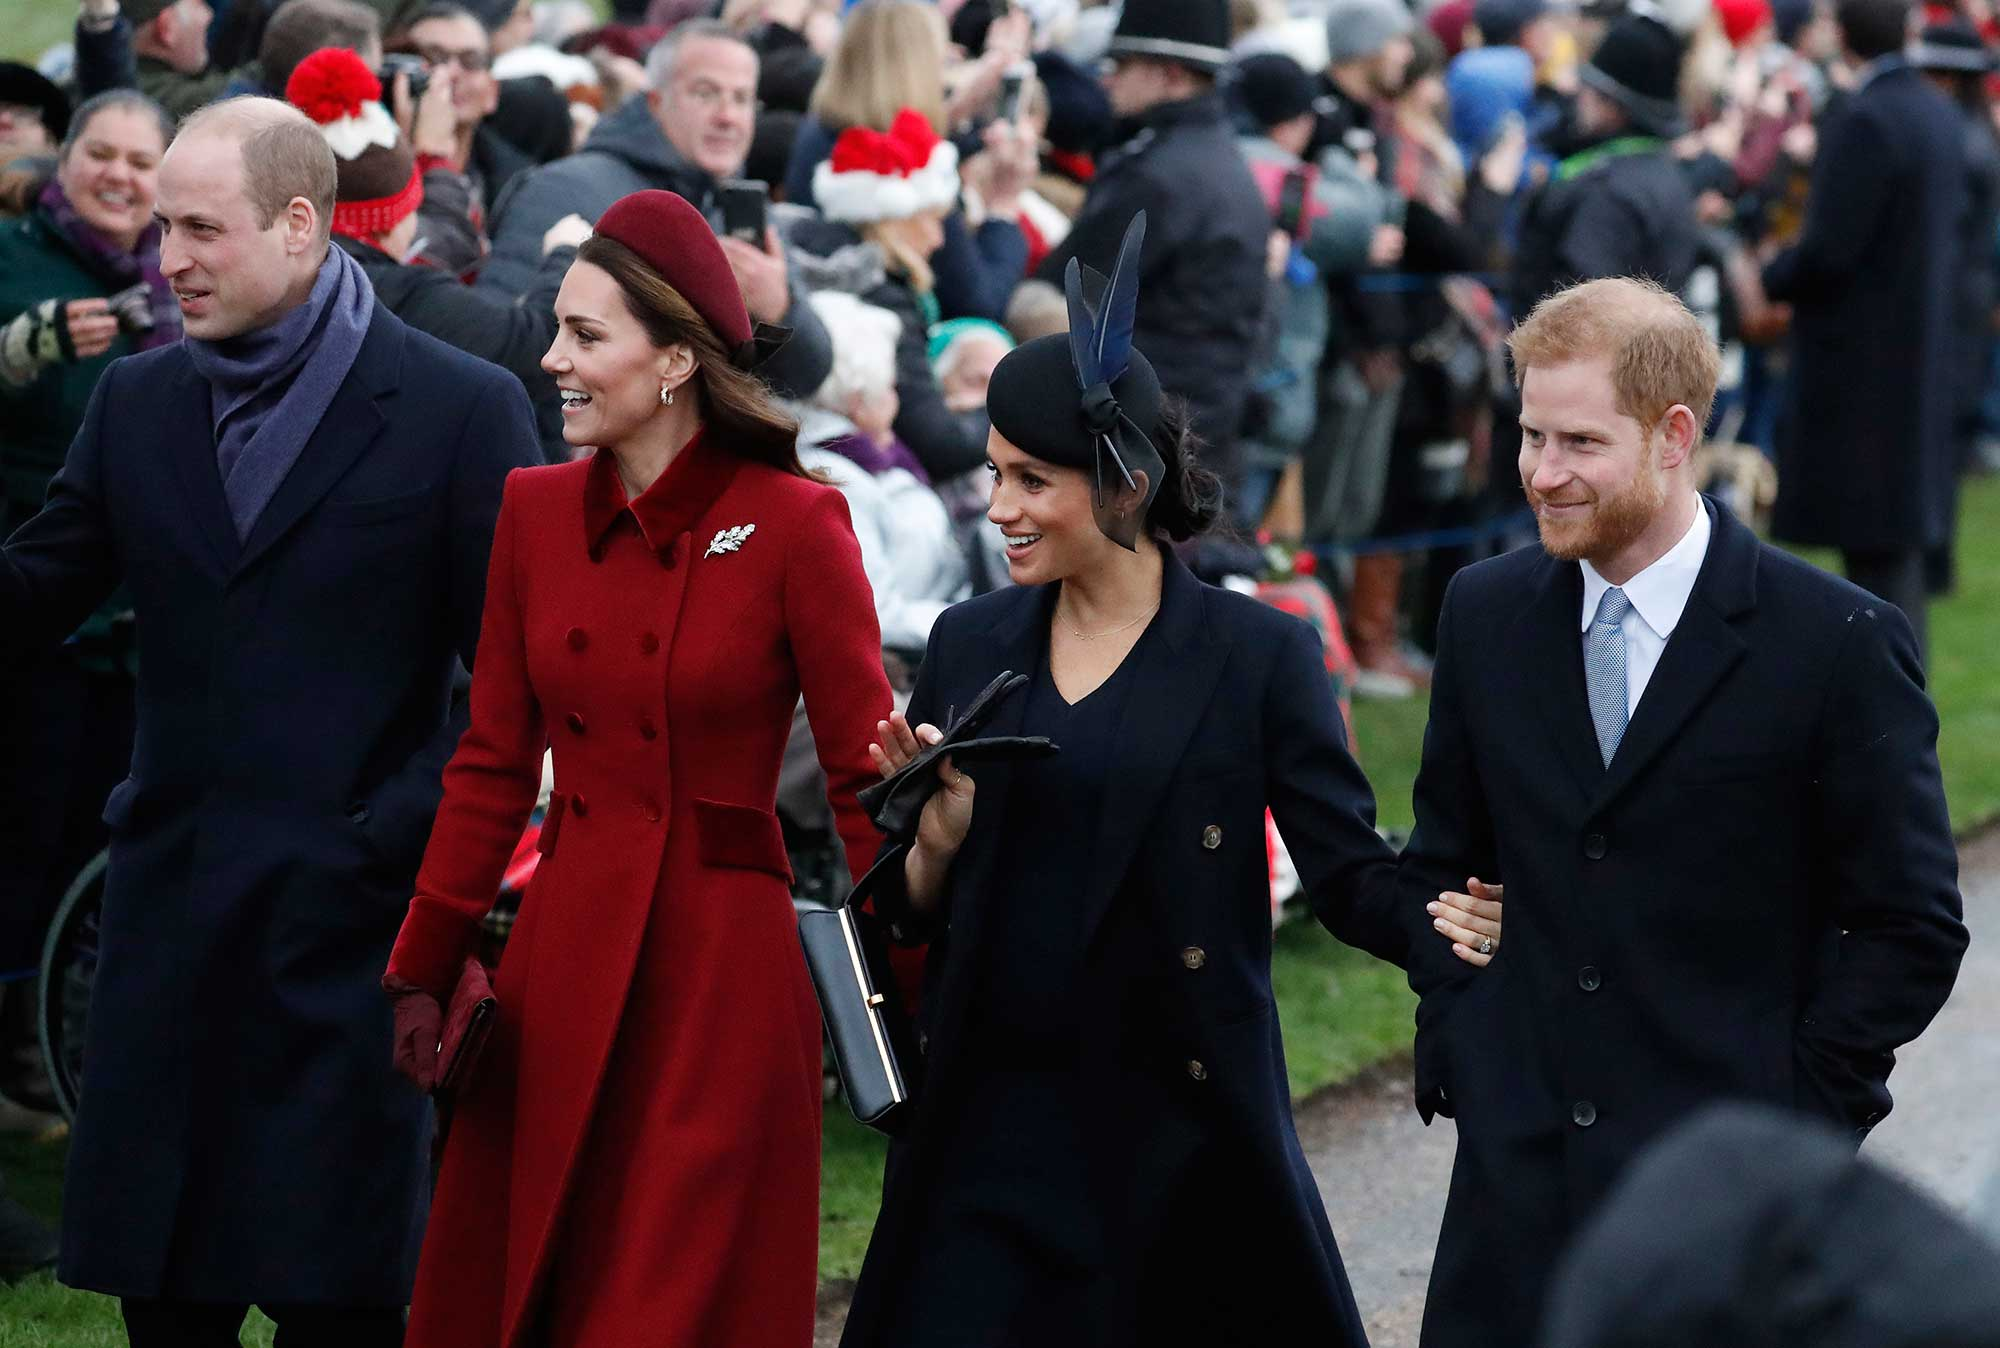 "<div class=""meta image-caption""><div class=""origin-logo origin-image none""><span>none</span></div><span class=""caption-text"">Prince William, Kate, Duchess of Cambridge, s Meghan Duchess of Sussex and Prince Harry, arrive at the Christmas day service at St Mary Magdalene Church on Dec. 25, 2018. (Frank Augstein/AP Photo)</span></div>"